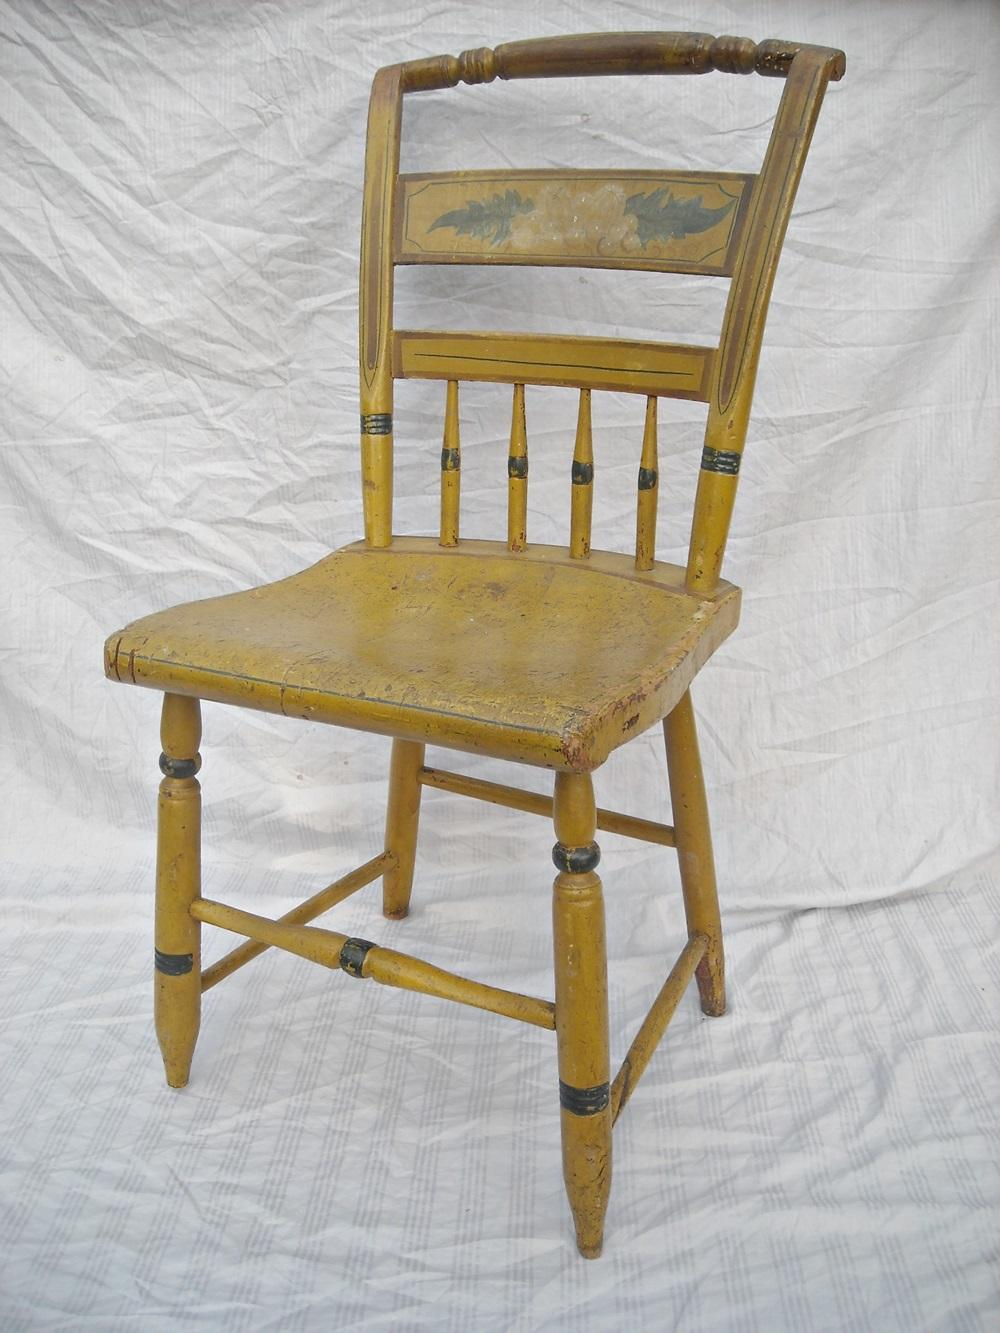 What A Charming Piece! Circa 1830s   40s. Antique Primitive Style Side Chair .